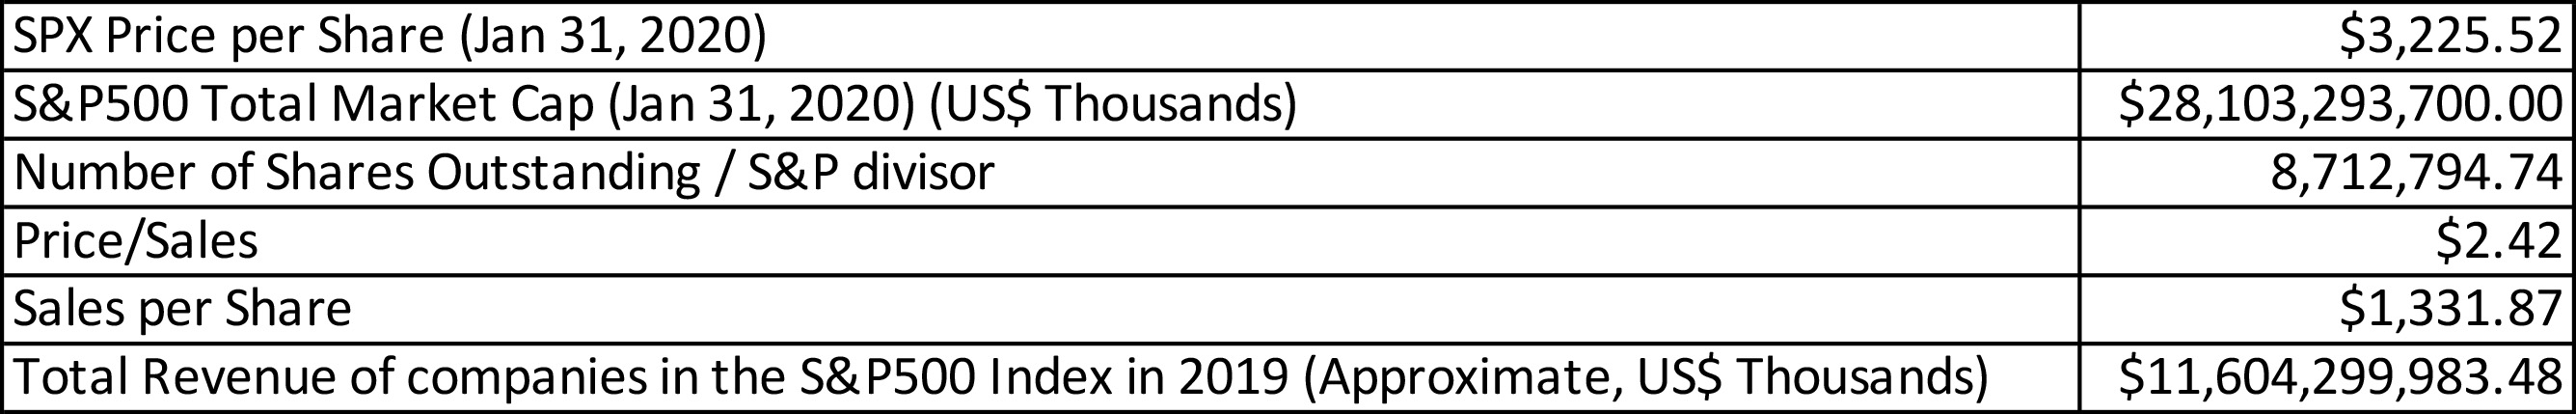 (Table 2. Revenue of companies in the S&P500 index, data provided by Yahoo Finance, S&P Dow Jones Indices, and Bloomberg).